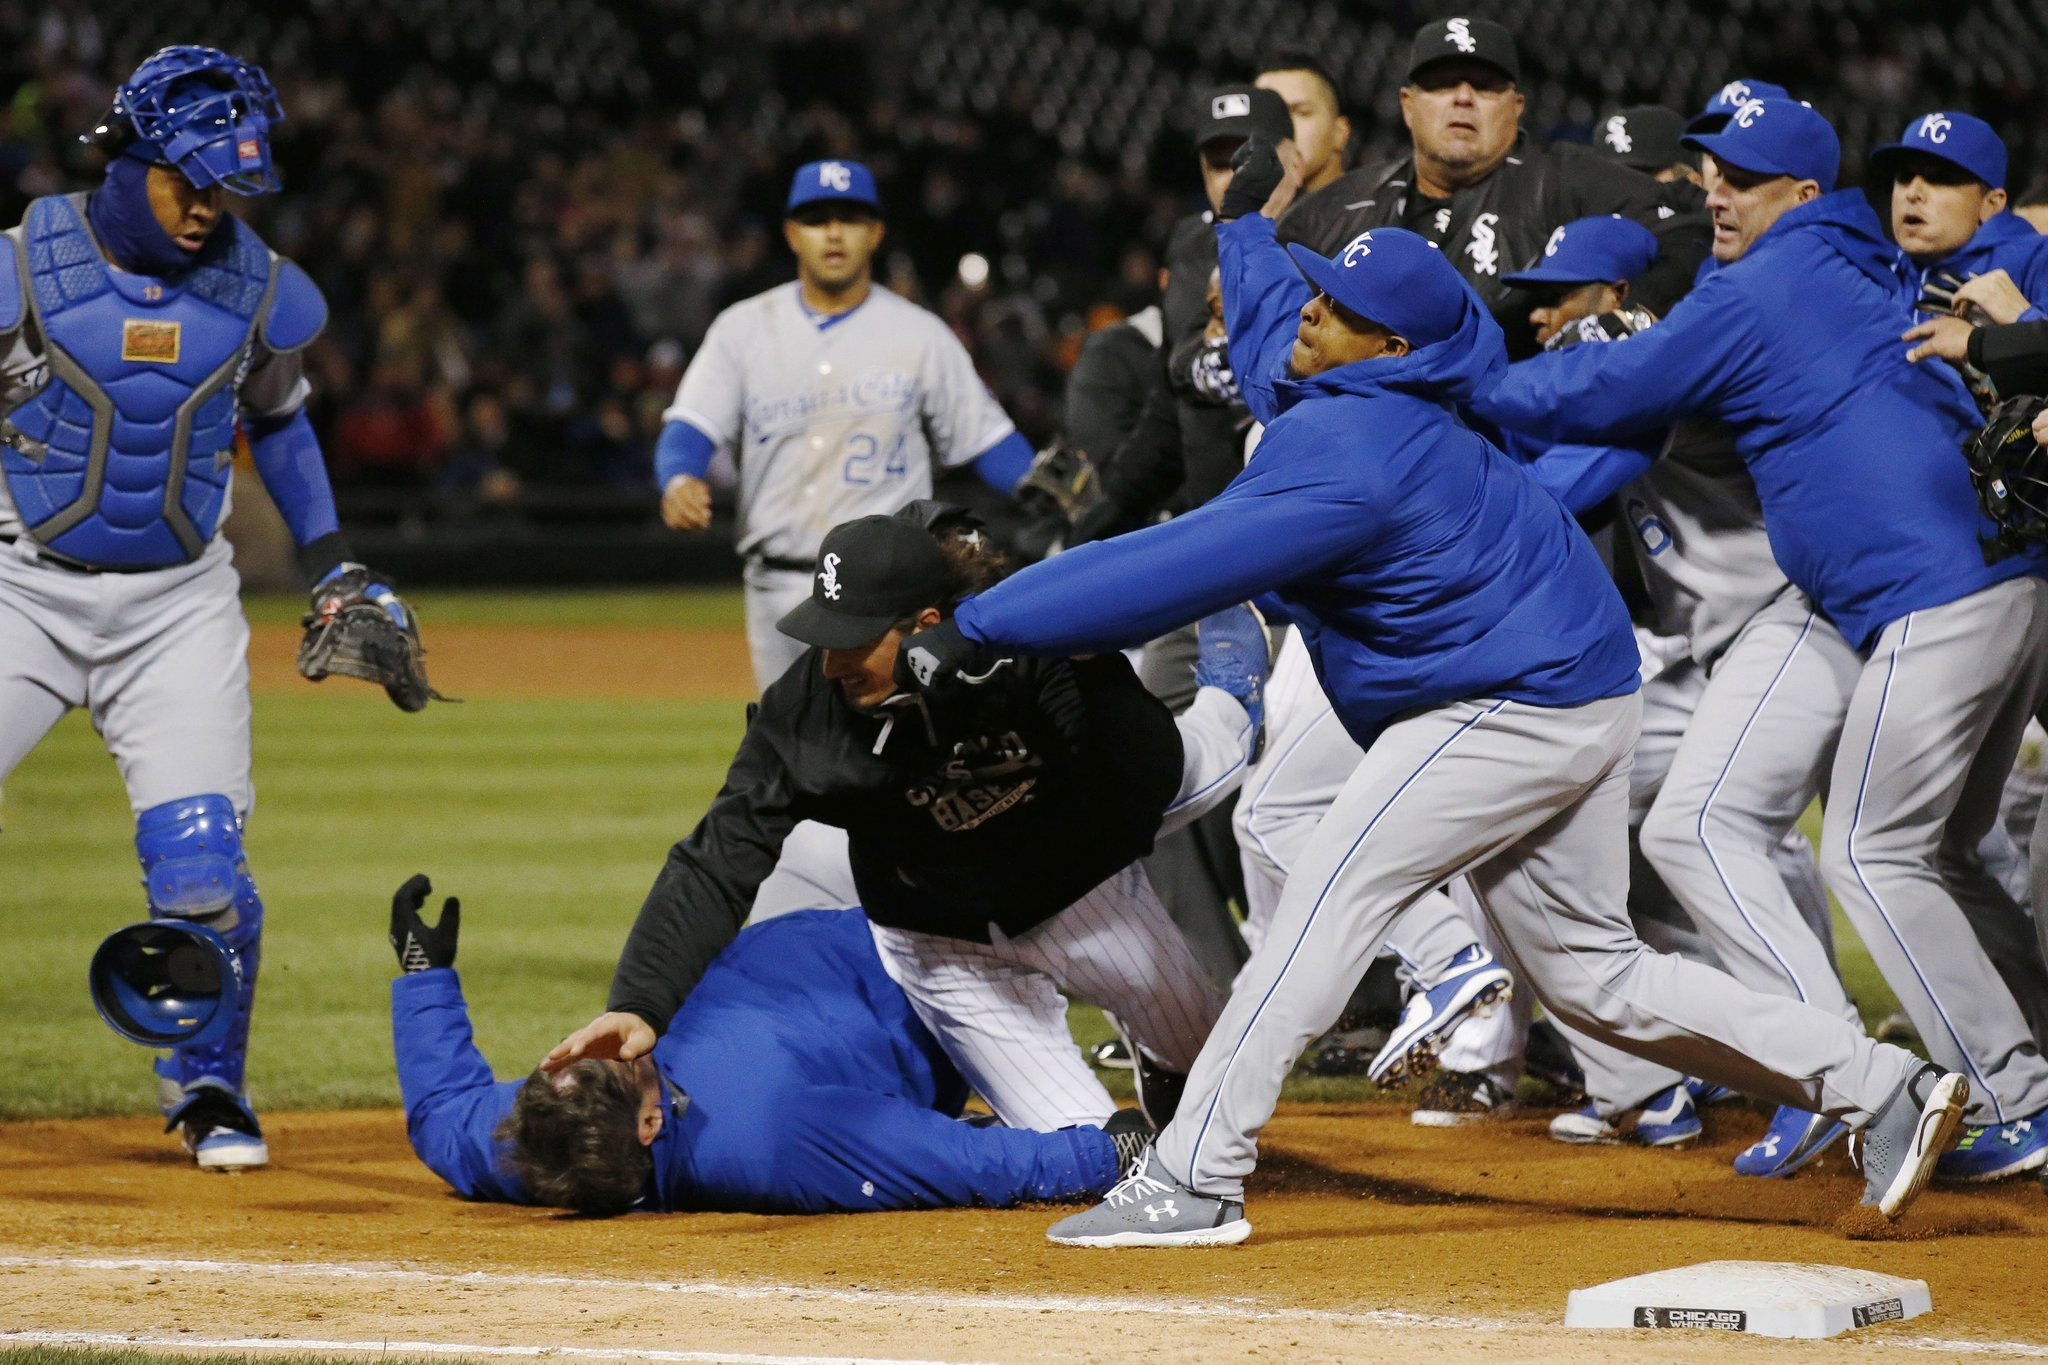 It's a battle royale as White Sox and Royals brawl, go to extra innings